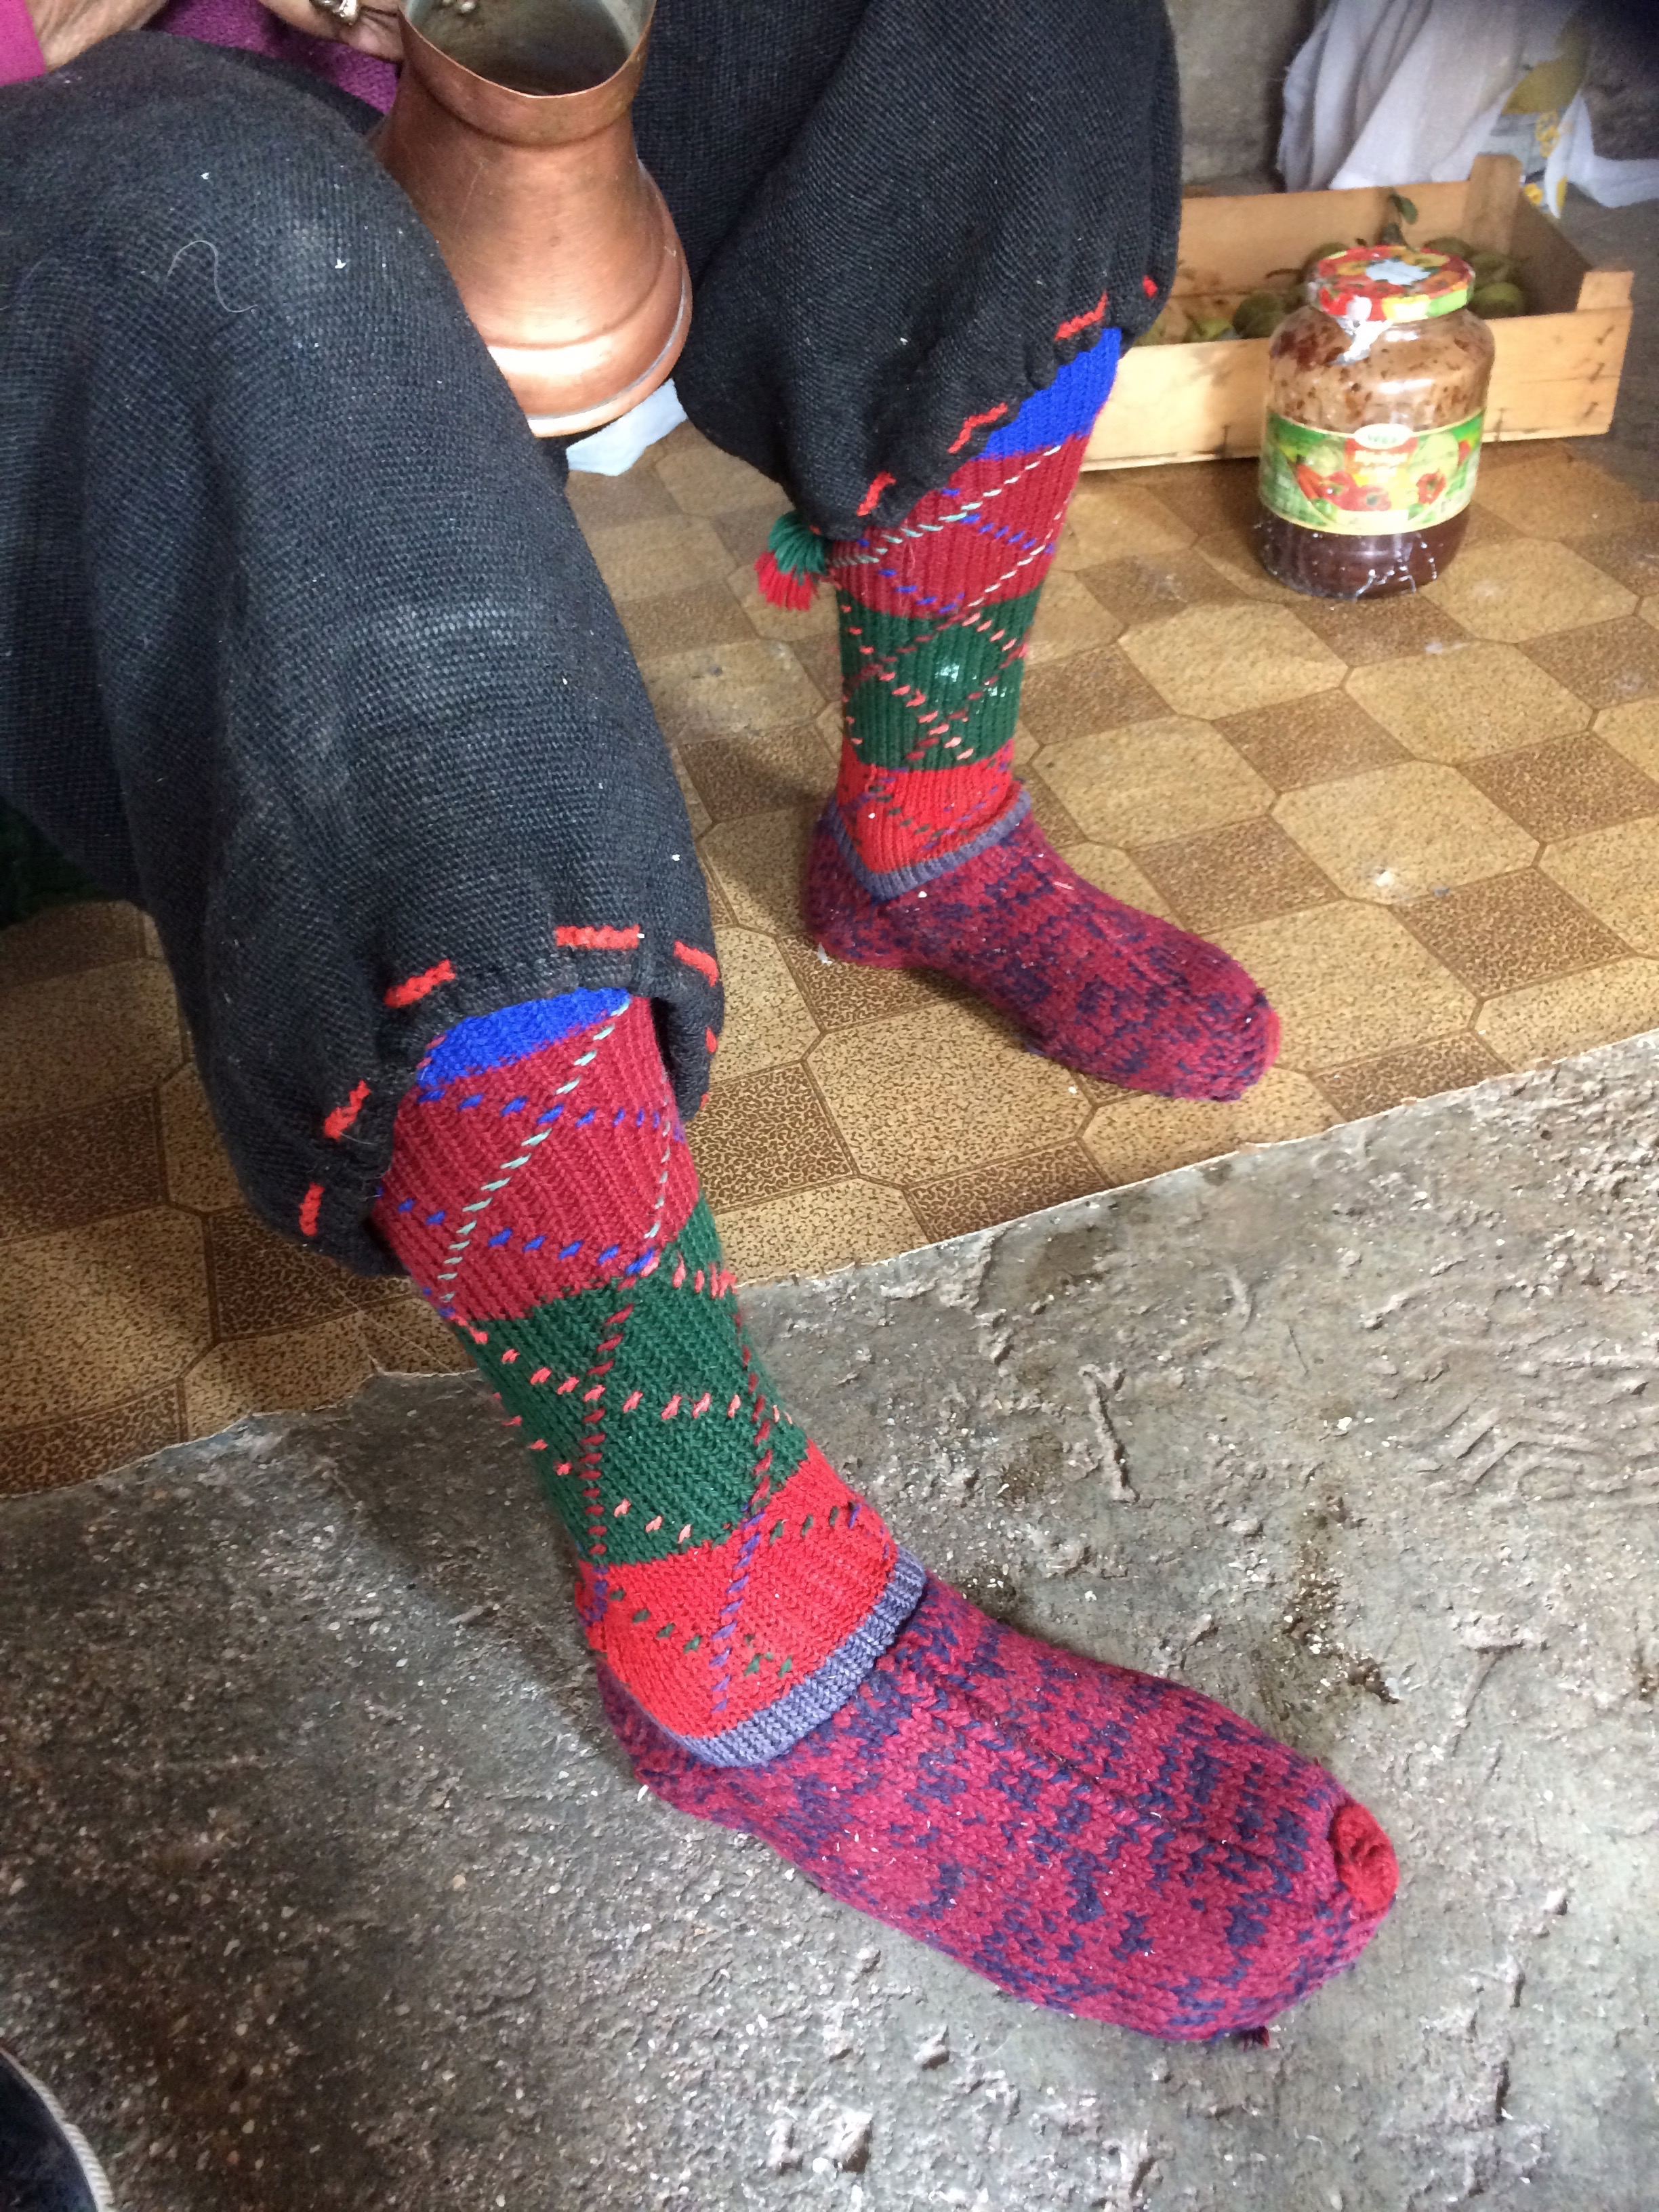 Trousers and socks